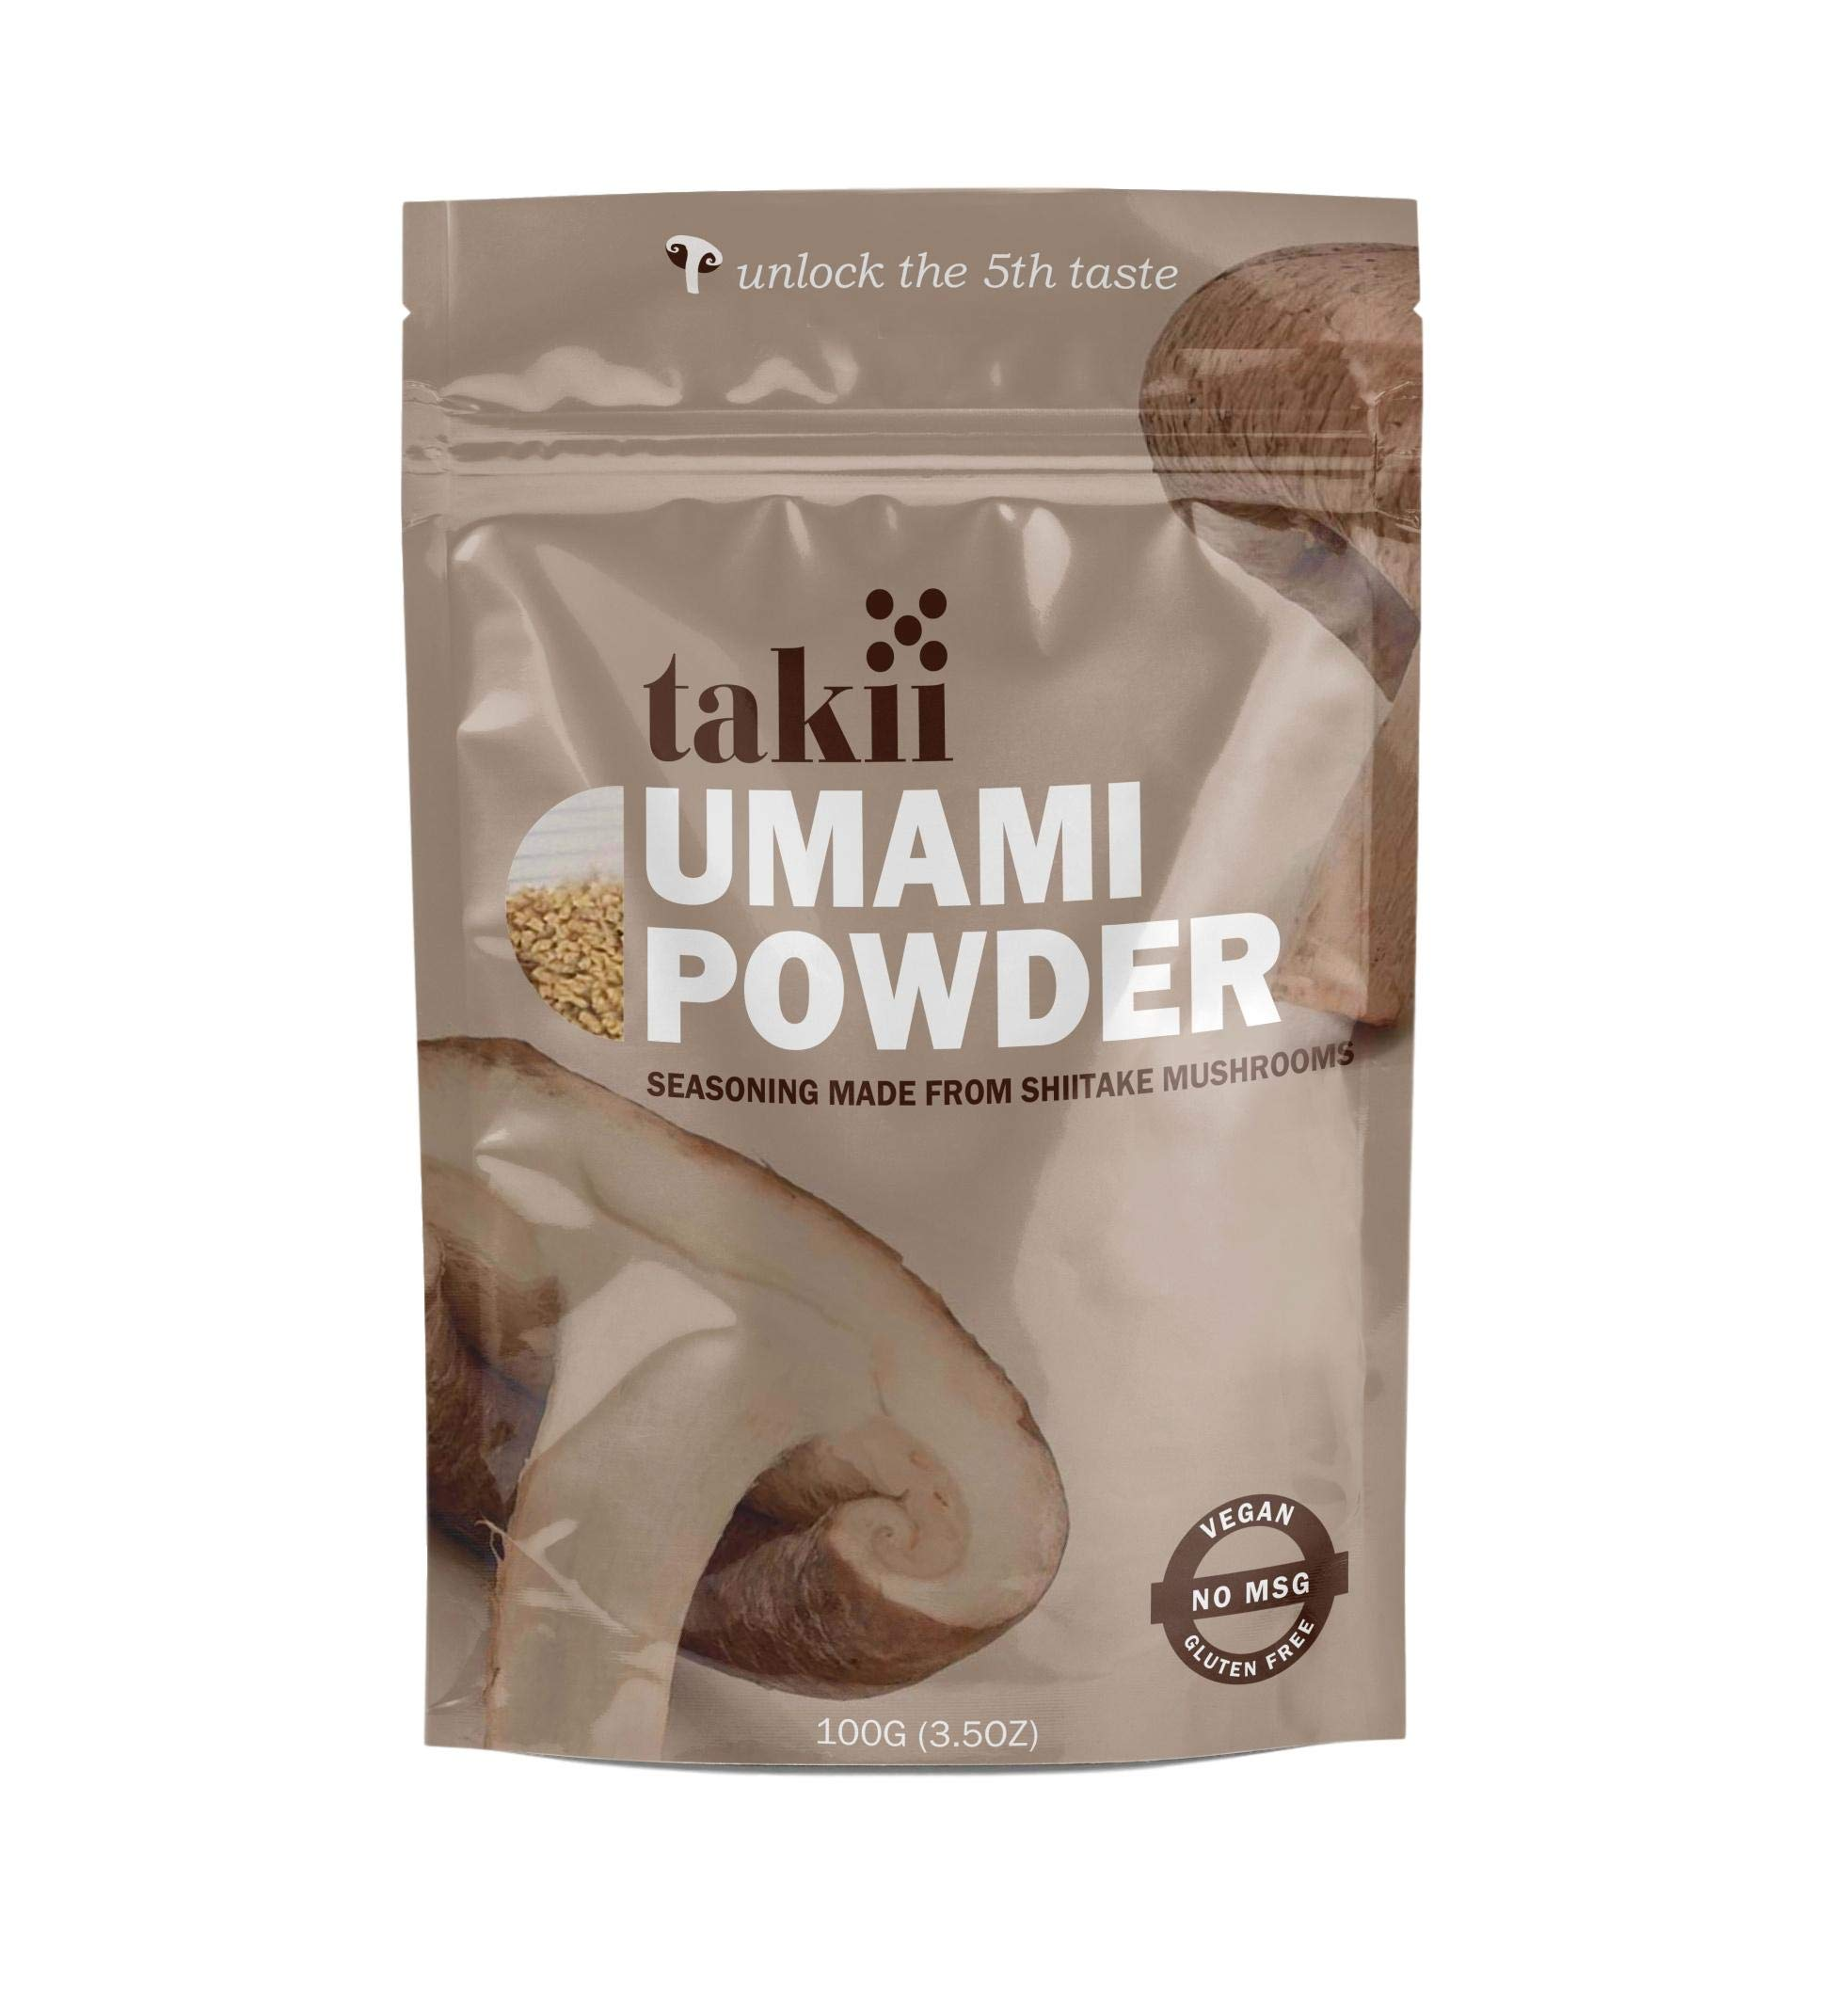 Takii Umami Powder, Magic Shiitake Mushroom Seasoning, Add Instant Flavor and Depth to All Your Favorite Dishes (1-3.5 Ounce Pouch)